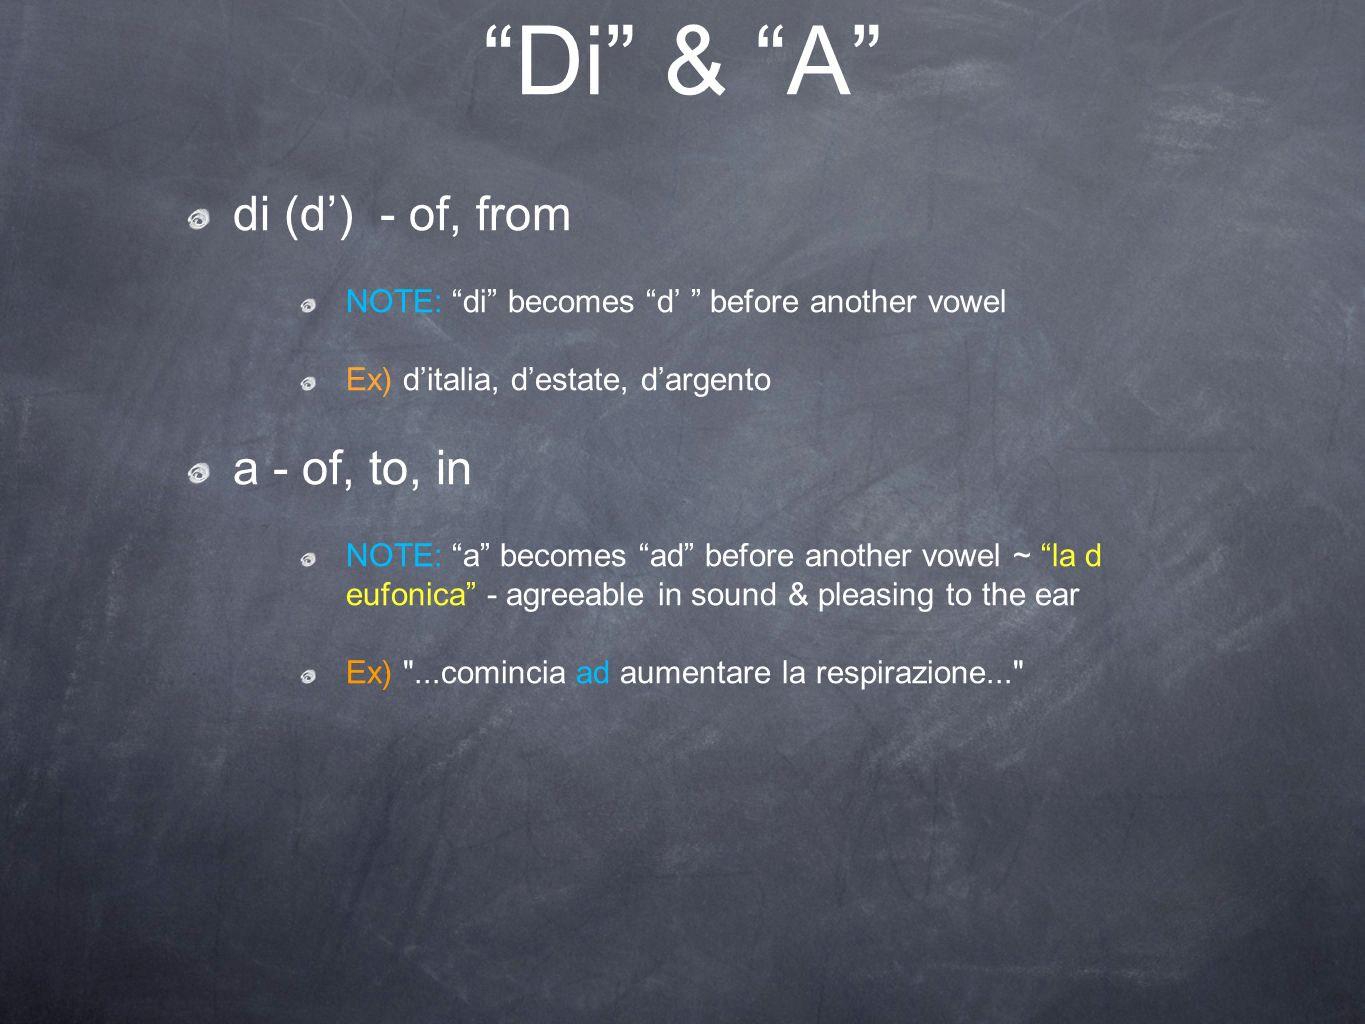 Di & A di (d) - of, from NOTE: di becomes d before another vowel Ex) ditalia, destate, dargento a - of, to, in NOTE: a becomes ad before another vowel